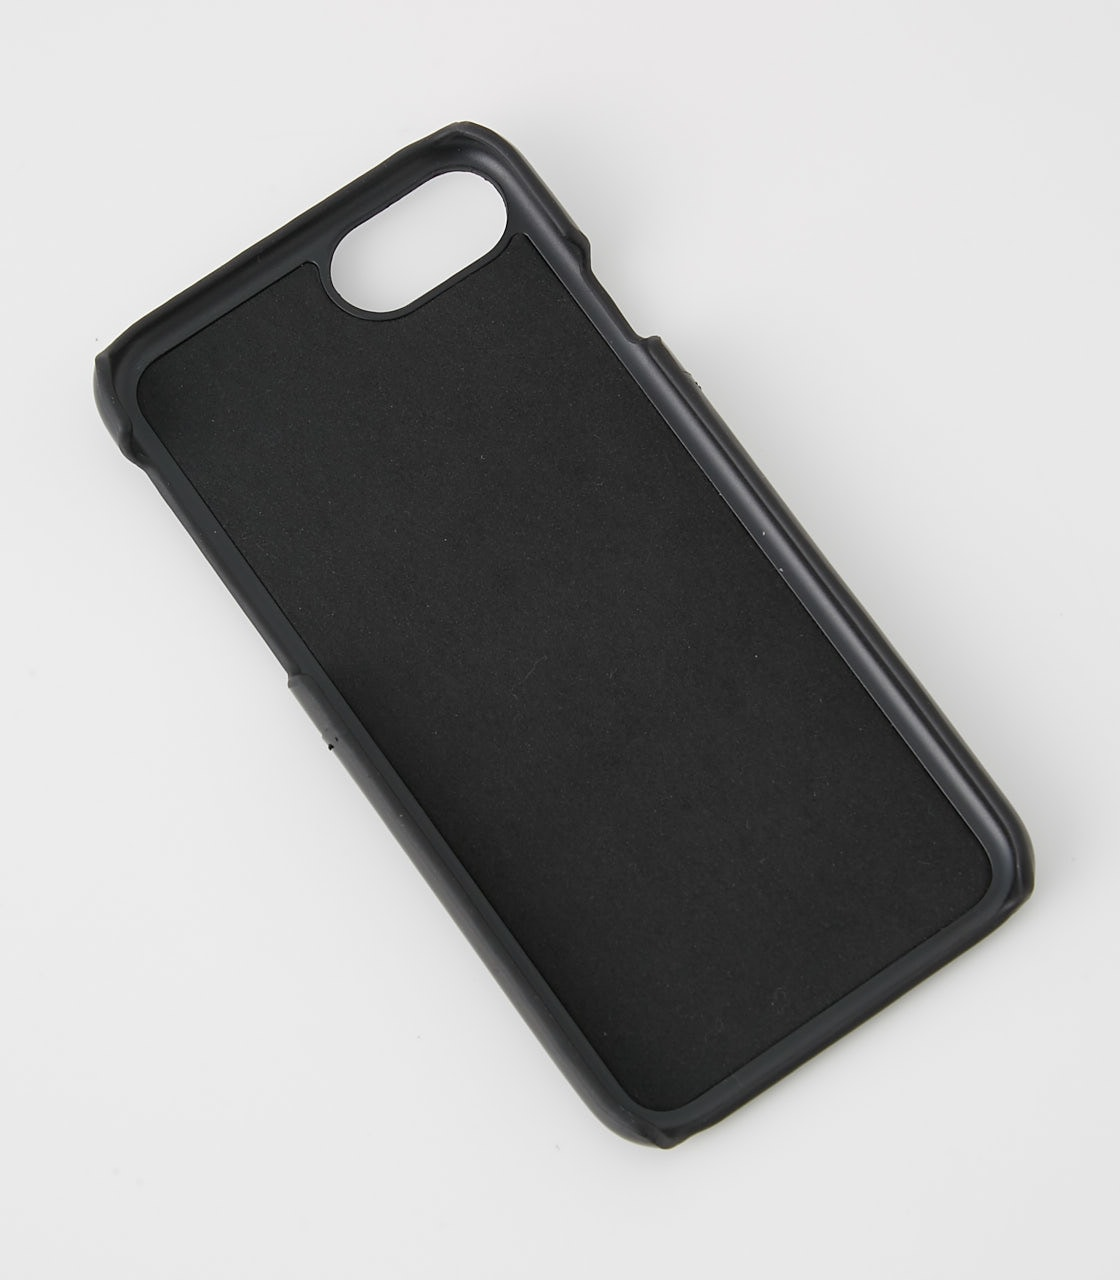 ENAMEL PHONE CASE 詳細画像 BLK 5